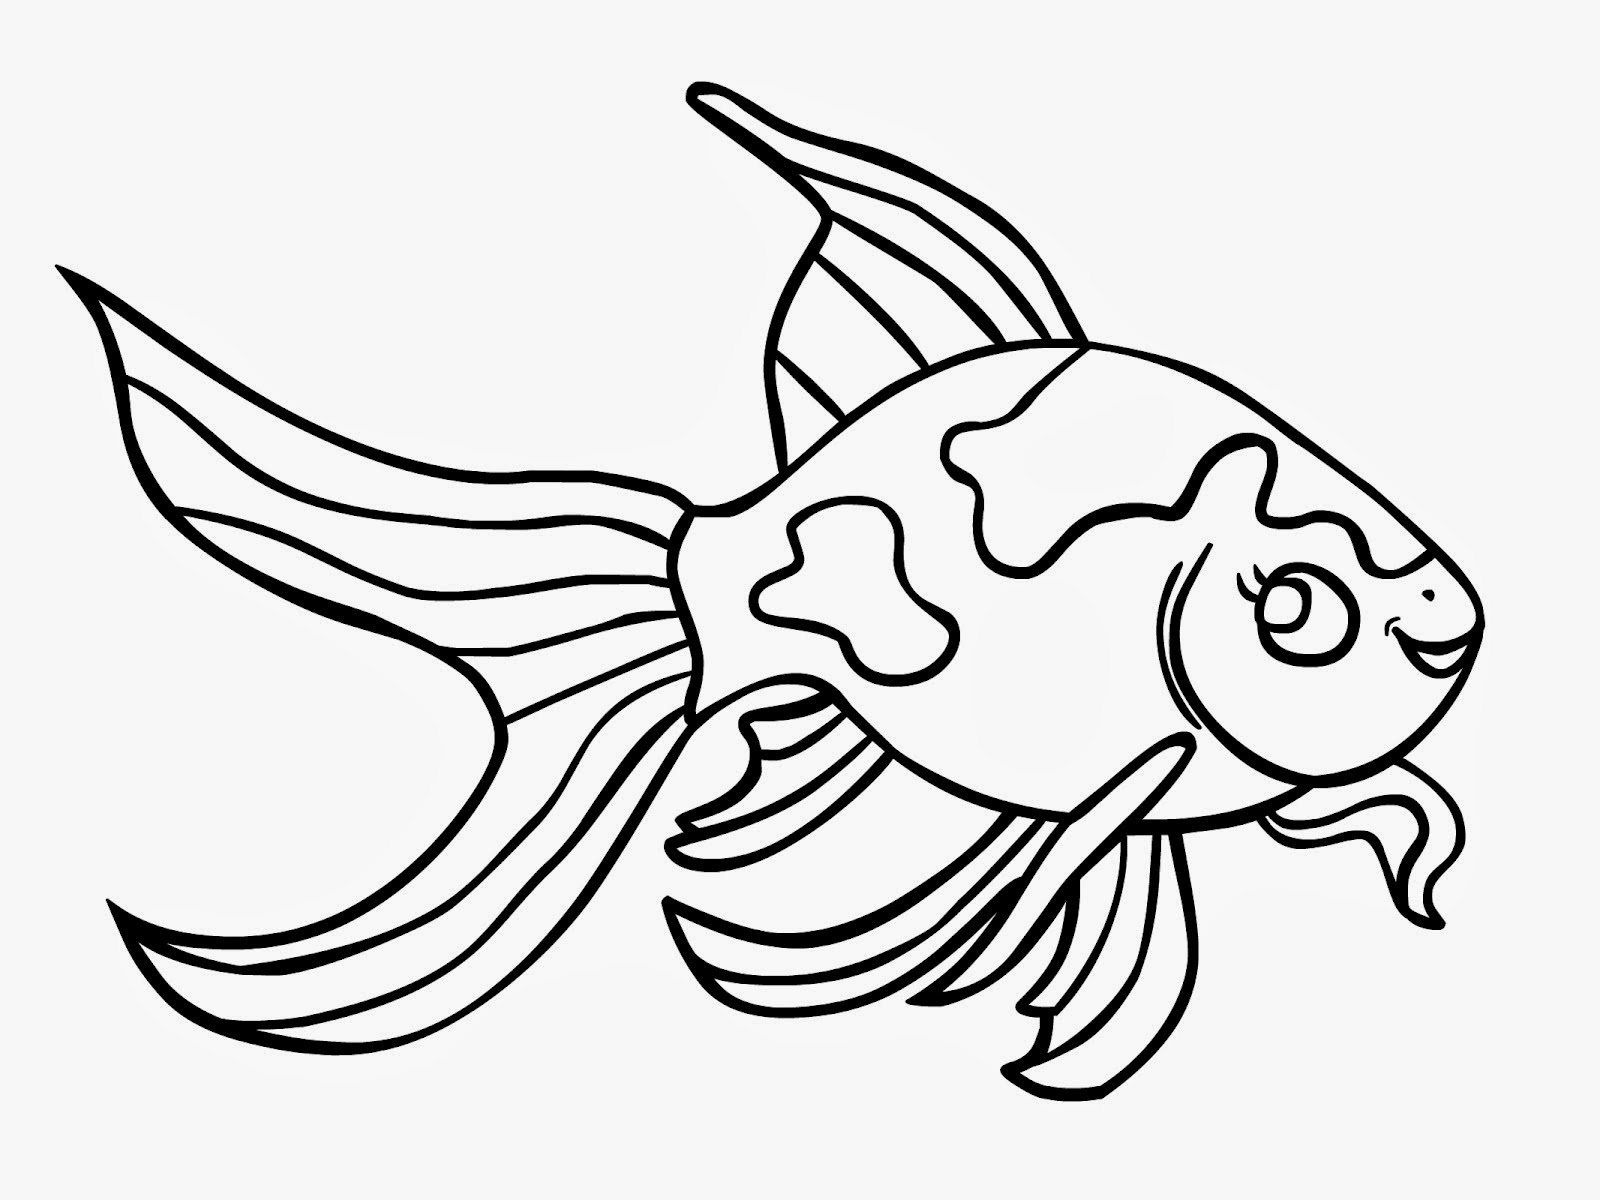 1600x1200 Excellent Design Ideas Goldfish Outline Black White Free Stock